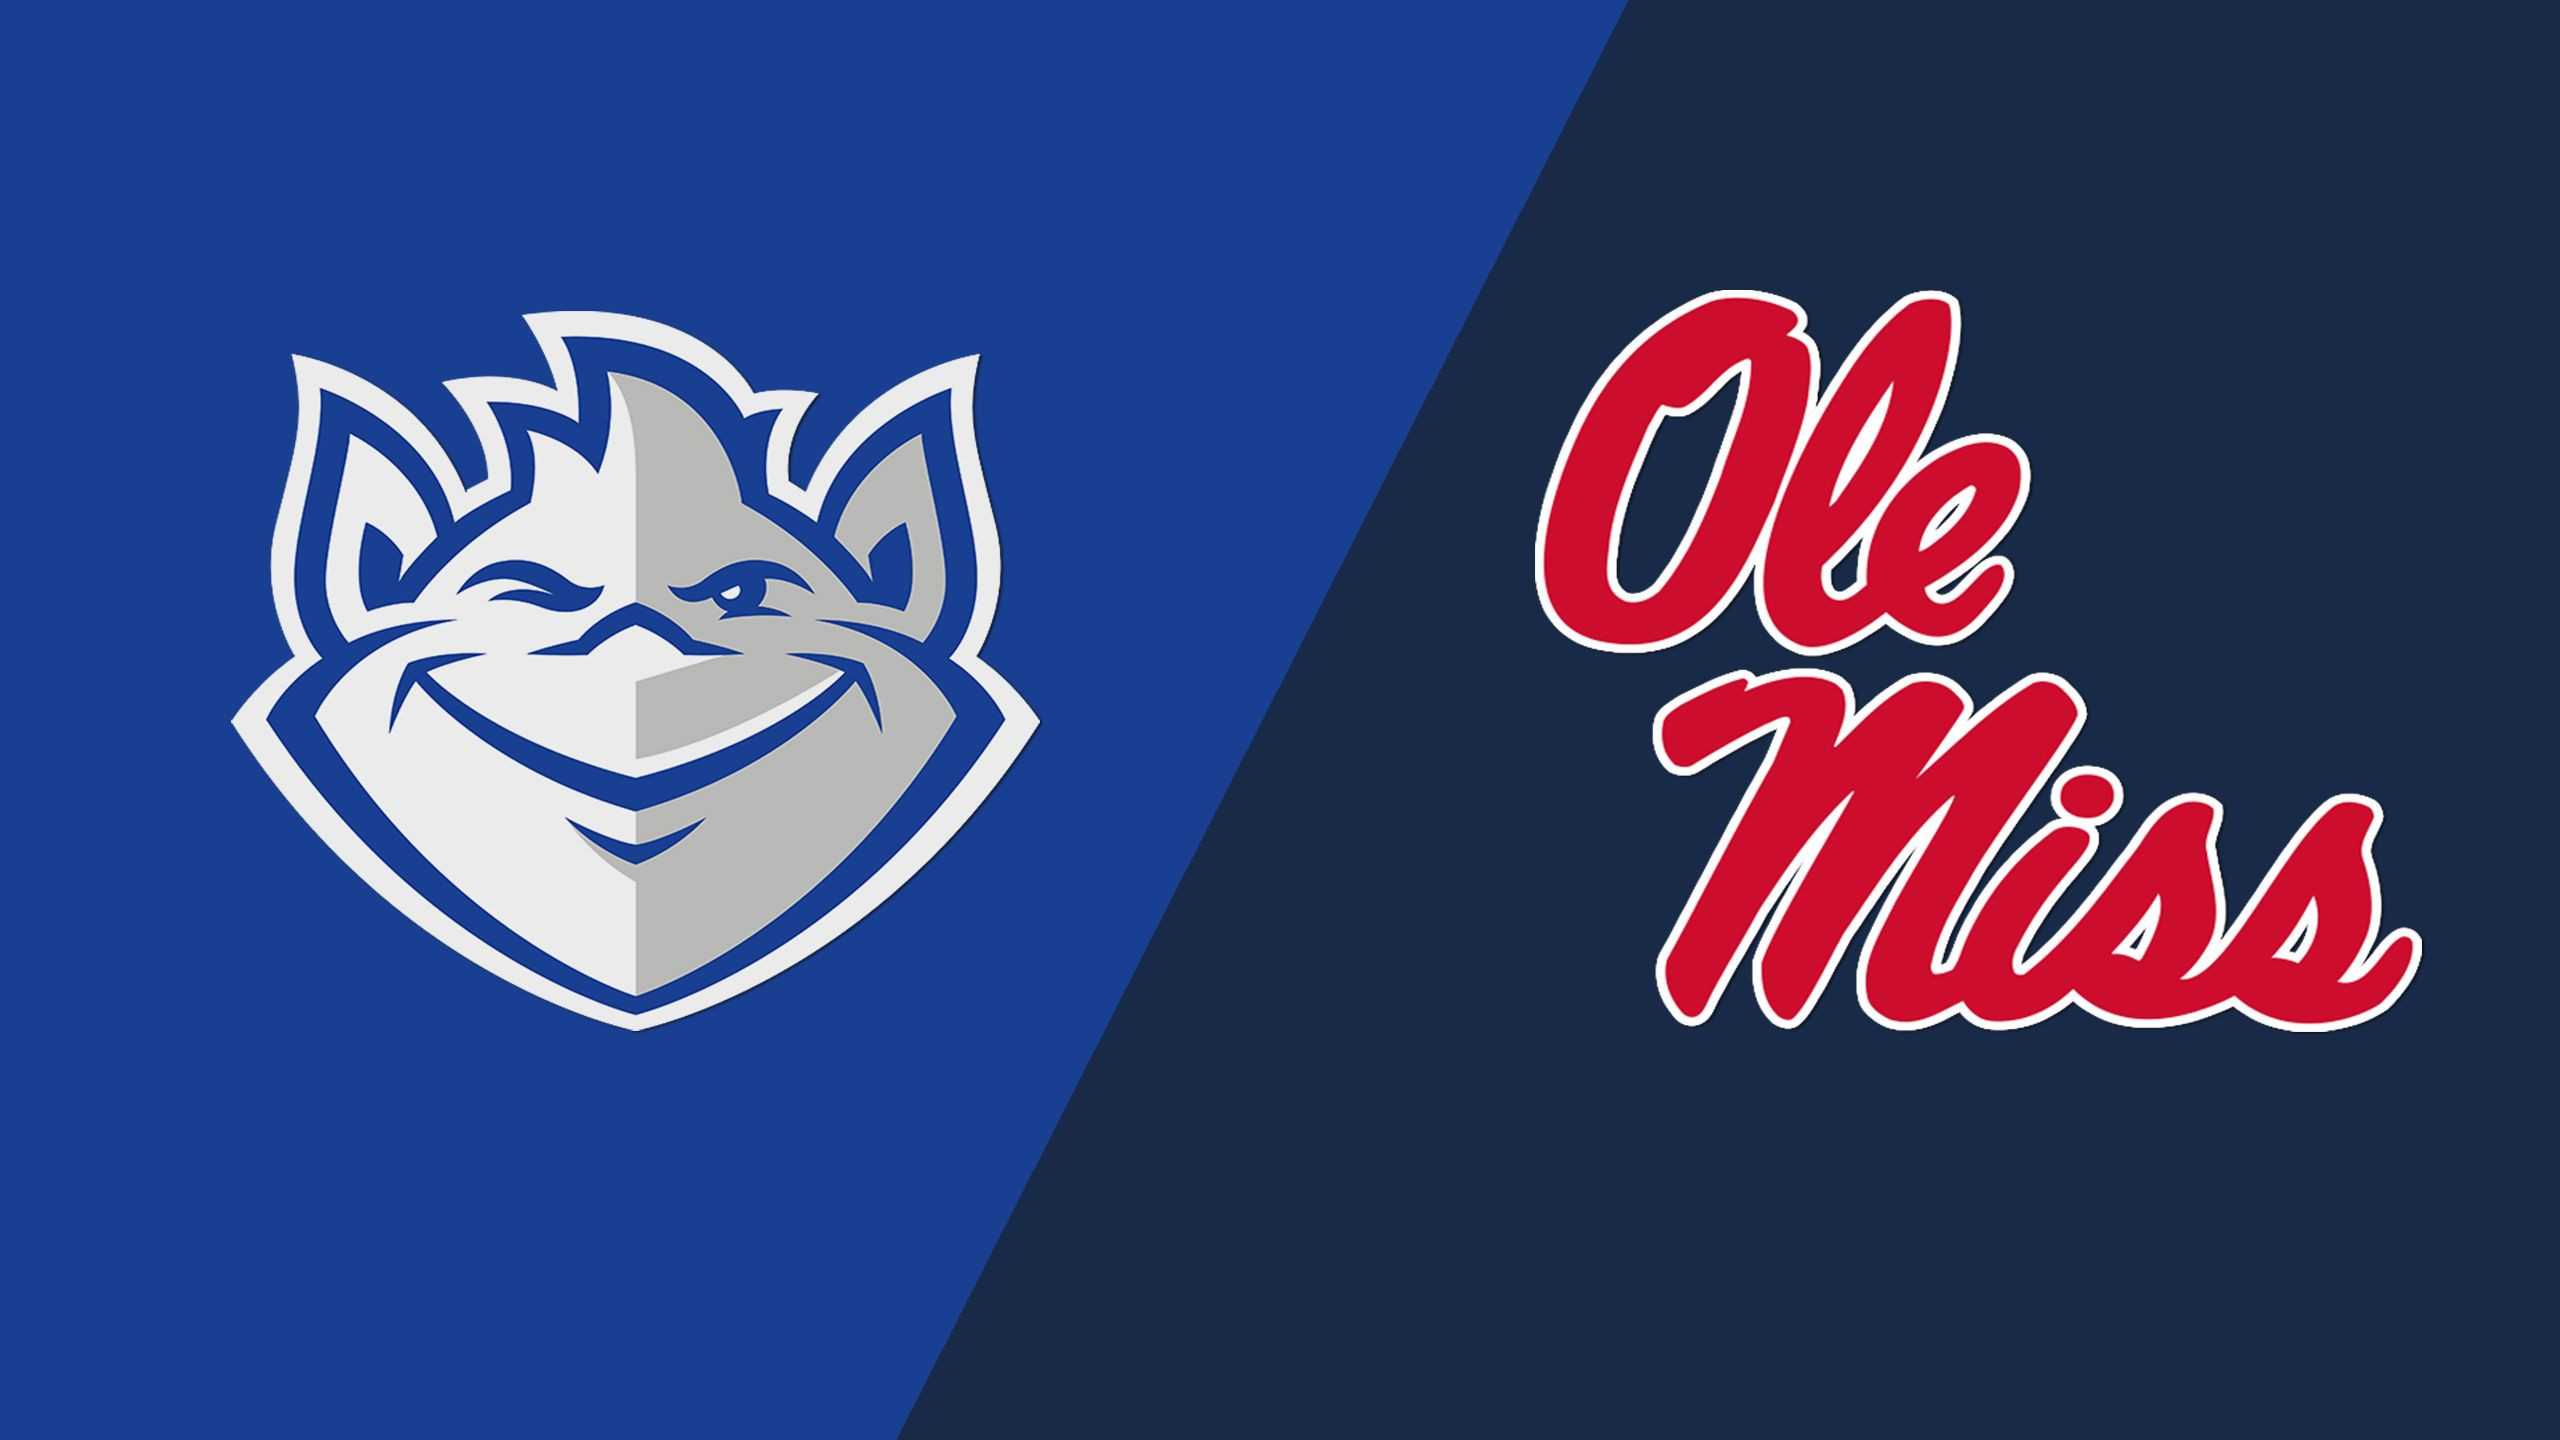 St. Louis vs. #4 Ole Miss (Site 8 / Game 2) (NCAA Baseball Championship)